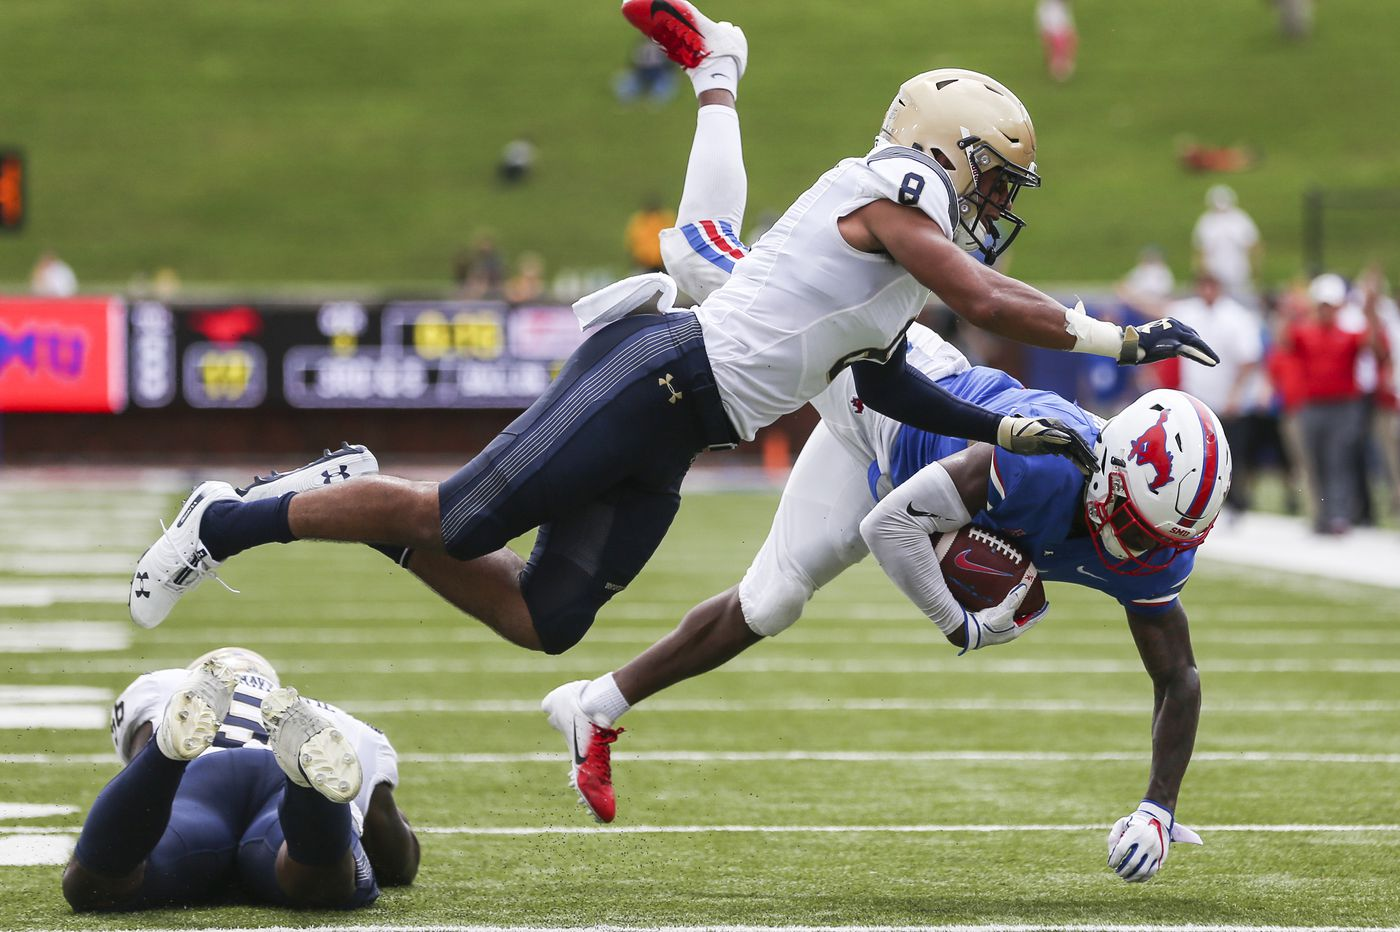 Unionville grad Elan Nash inspired by veteran father to play for Navy